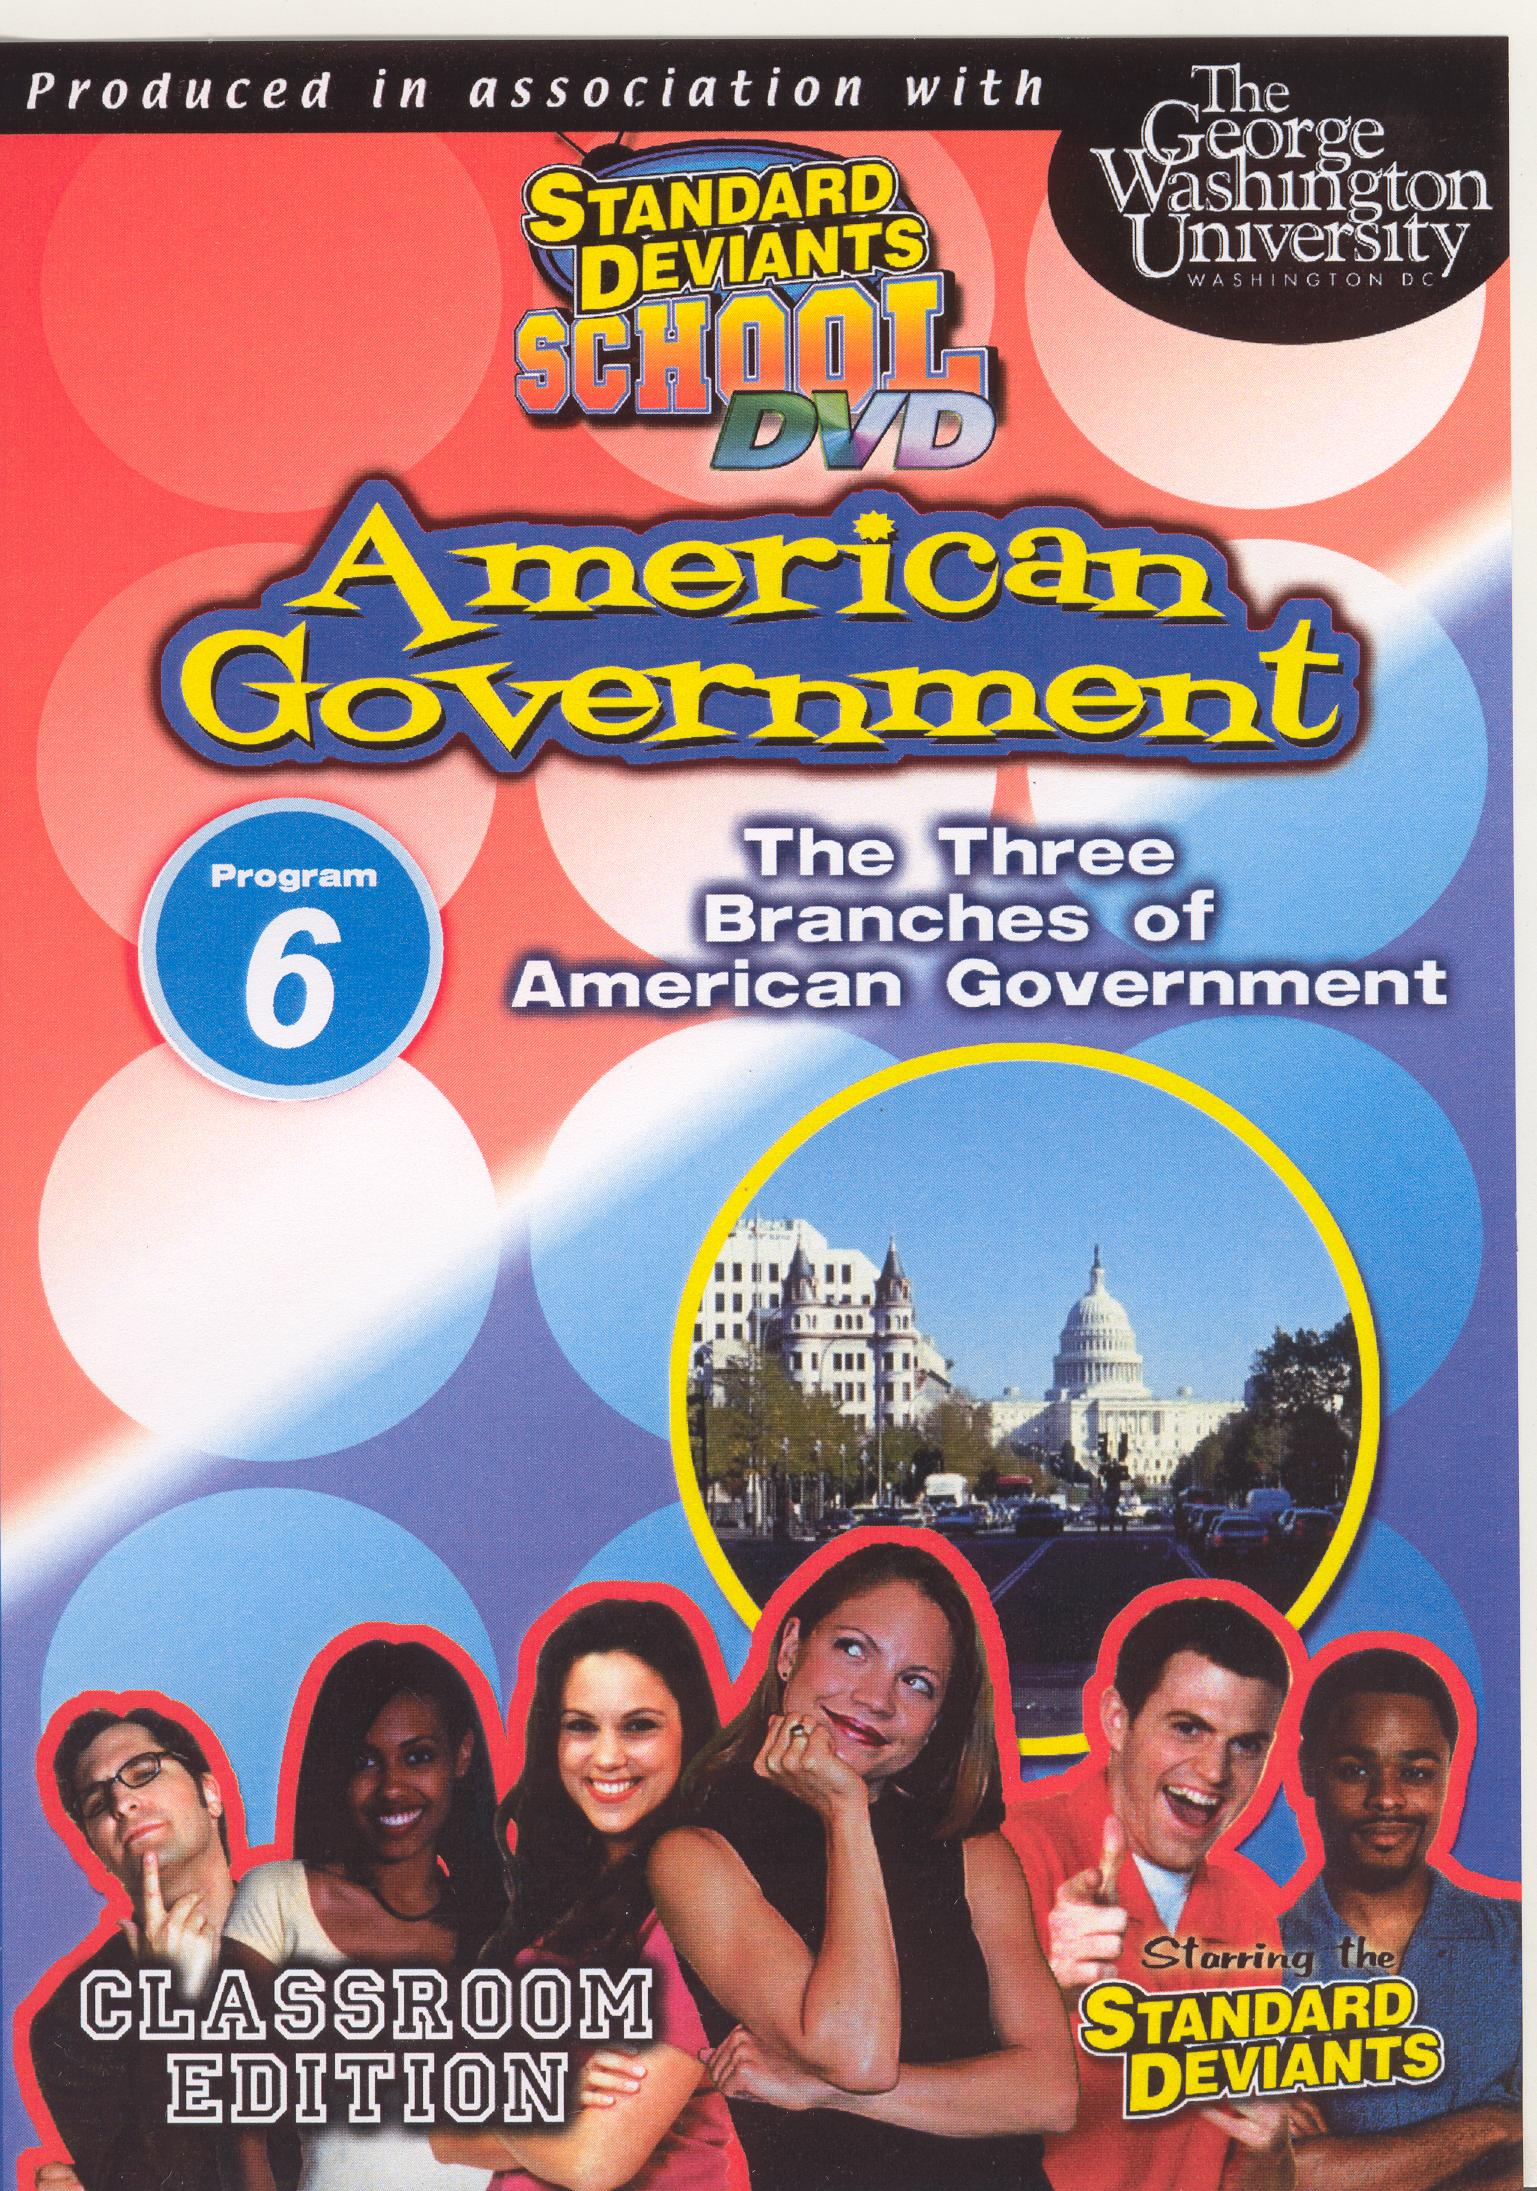 Standard Deviants School: American Government, Module 6 - The Three Branches of American Government